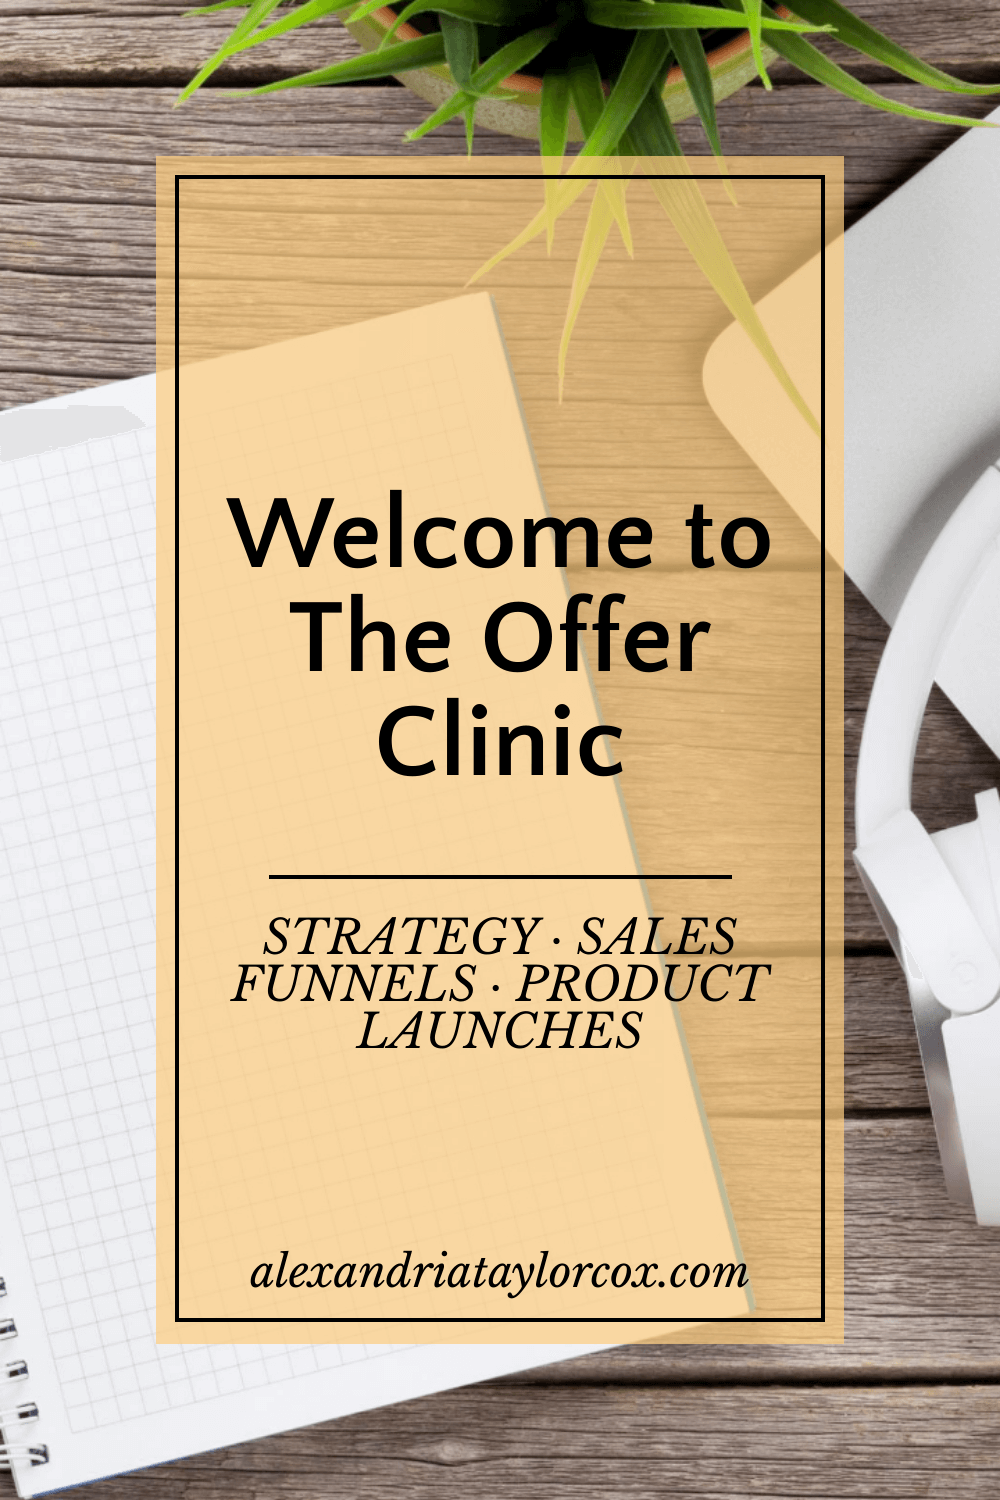 Welcome to The Offer Clinic